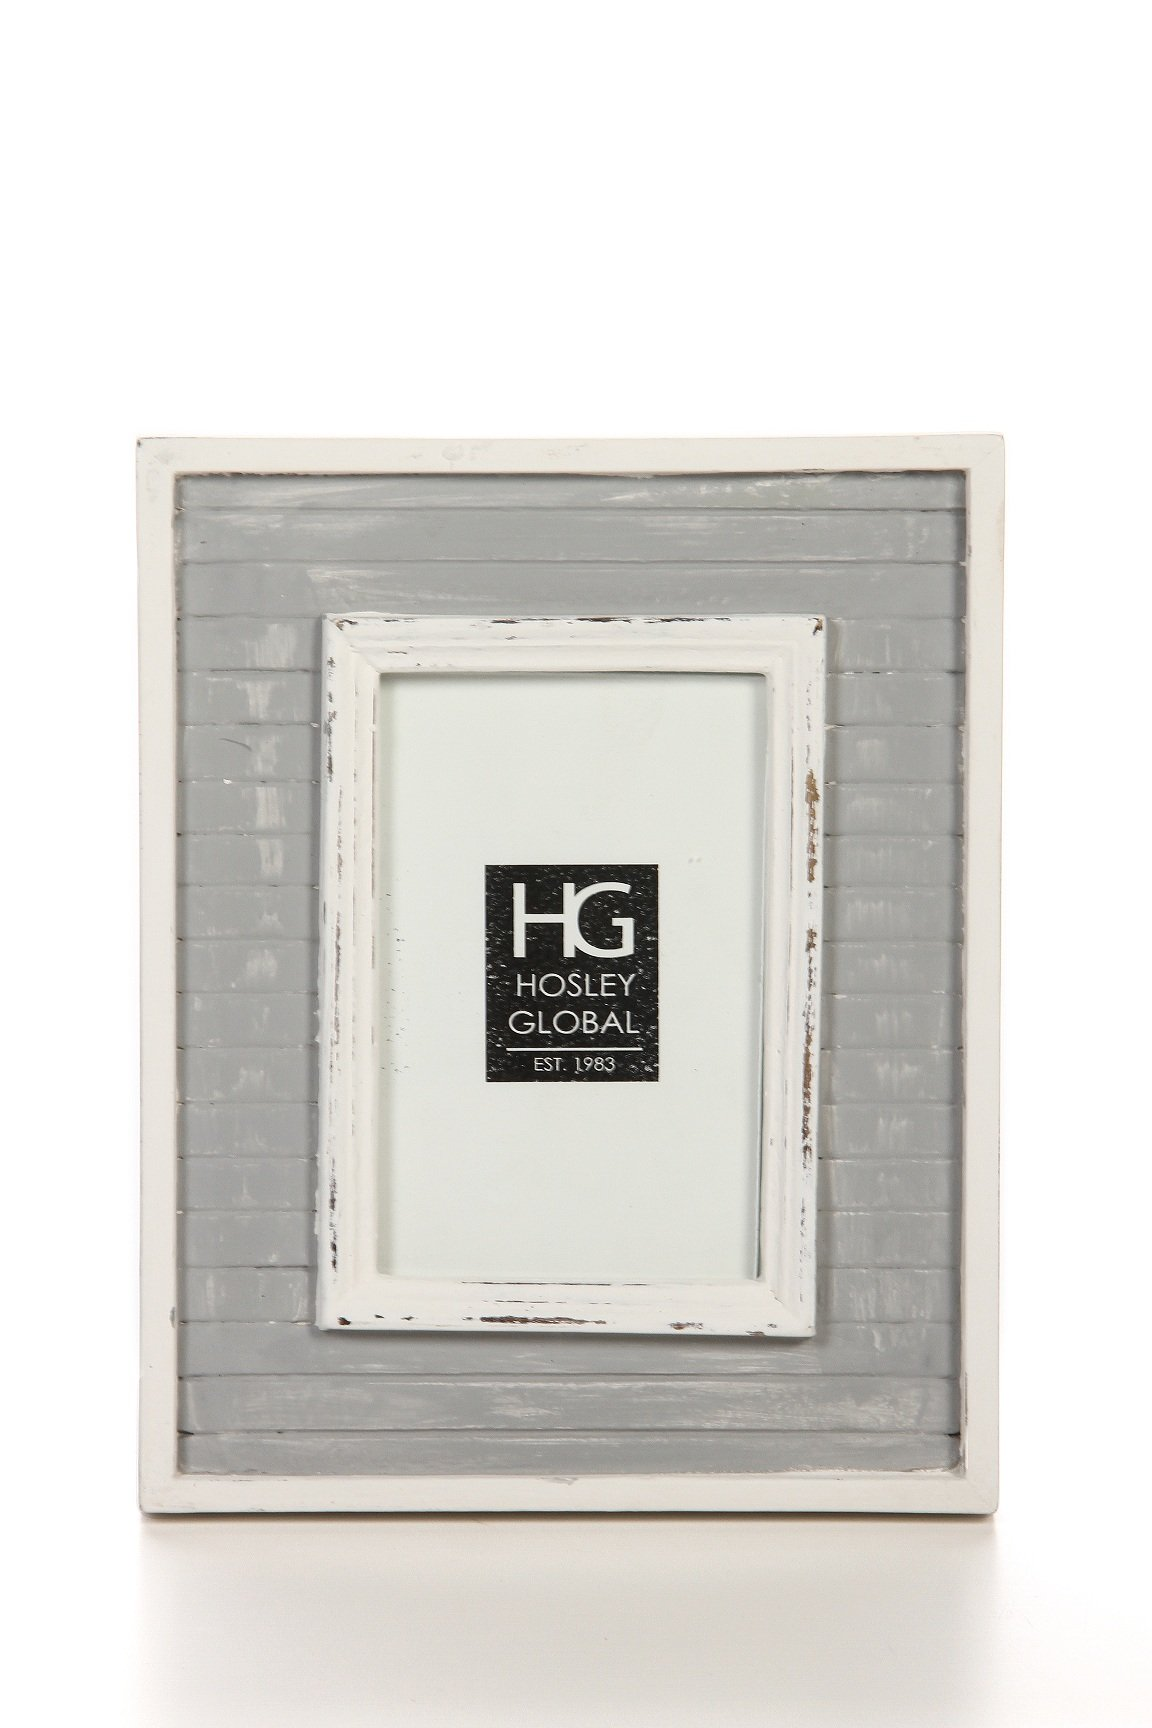 Hosley Distressed Grey Slat Board Tabletop Picture Frame, 4x6. Ideal Gift for Home, Wedding, Party. Home Office, Spa P2